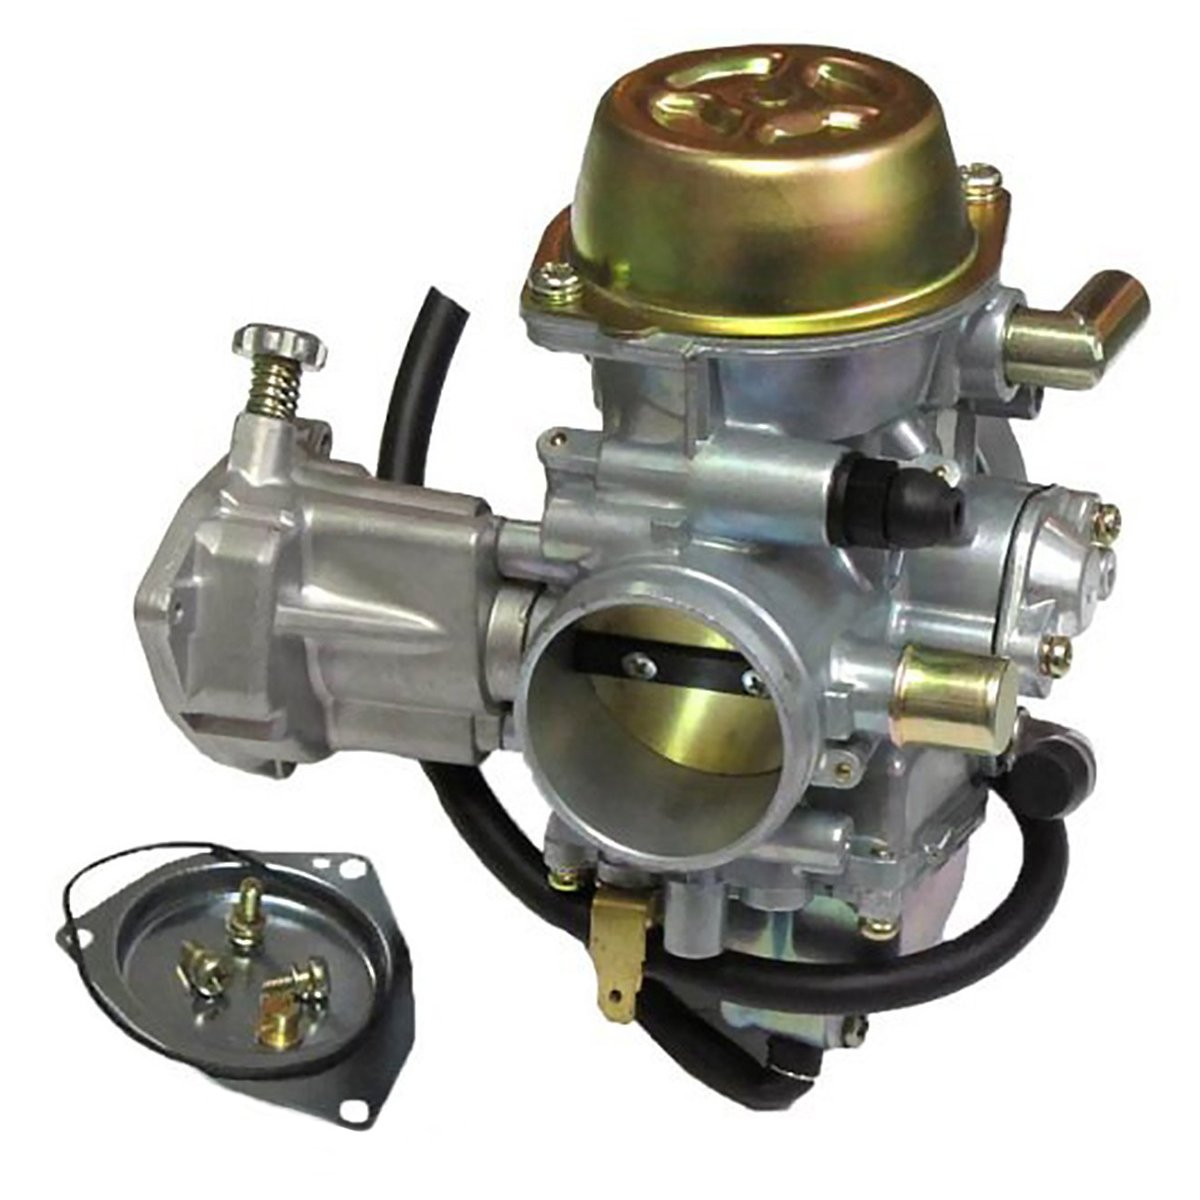 Carburetor Fits Yamaha RHINO 660 YFM660 2004 2005 2006 2007 NEW Carb by Amhousejoy RUIAN HAOCHENG VEHICLE PARTS